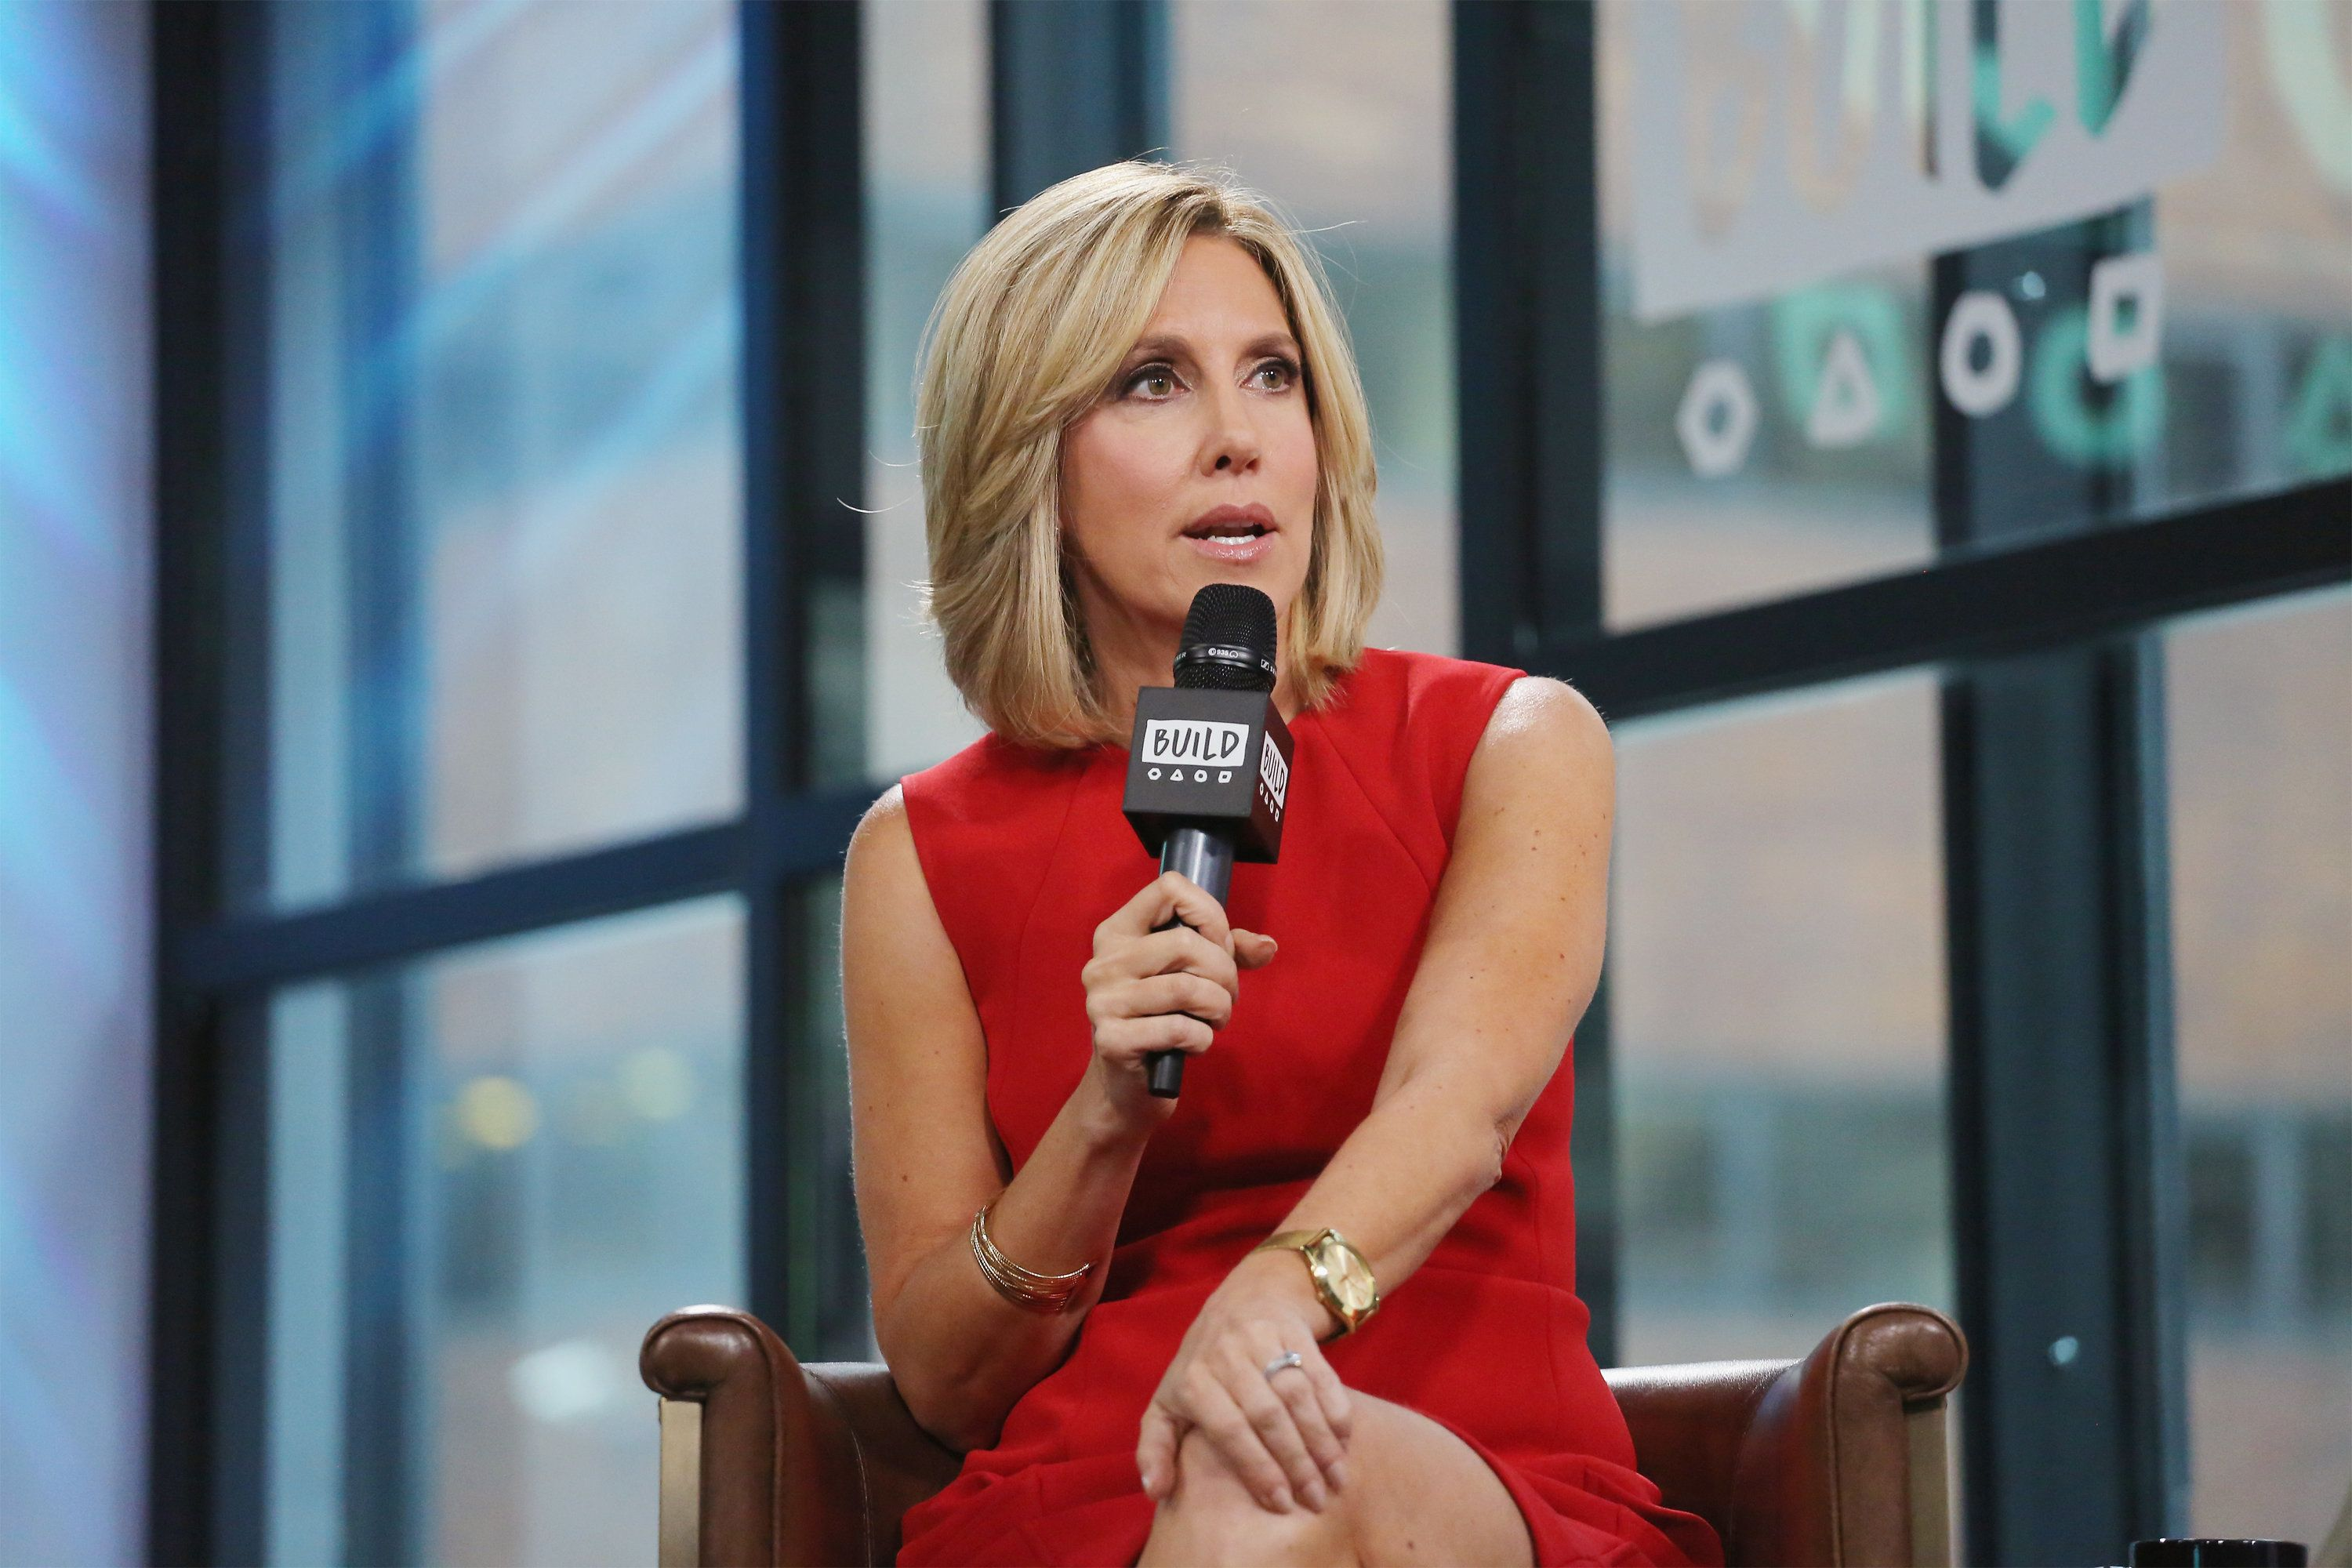 NEW YORK, NY - JULY 25:  Journalist  Alisyn Camerota visits Build to discuss her new book 'Amanda Wakes Up' at Build Studio on July 25, 2017 in New York City.  (Photo by Mireya Acierto/FilmMagic)